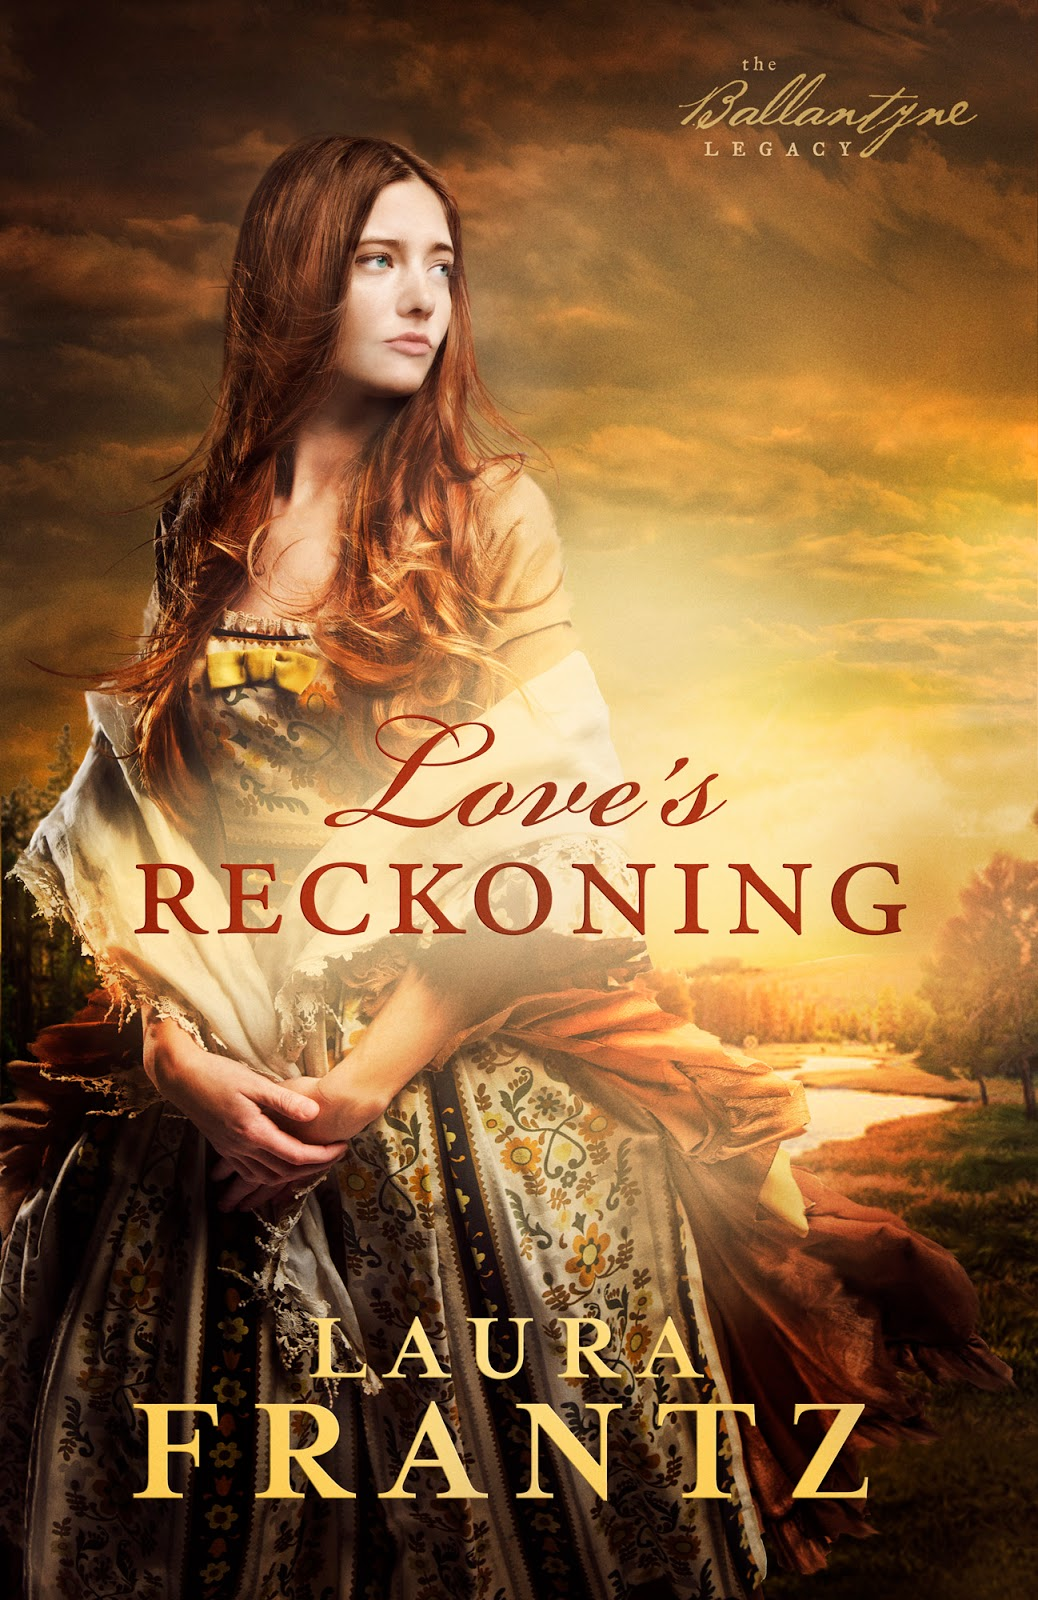 Photo of Laura Frantz' Love's Reckoning book cover